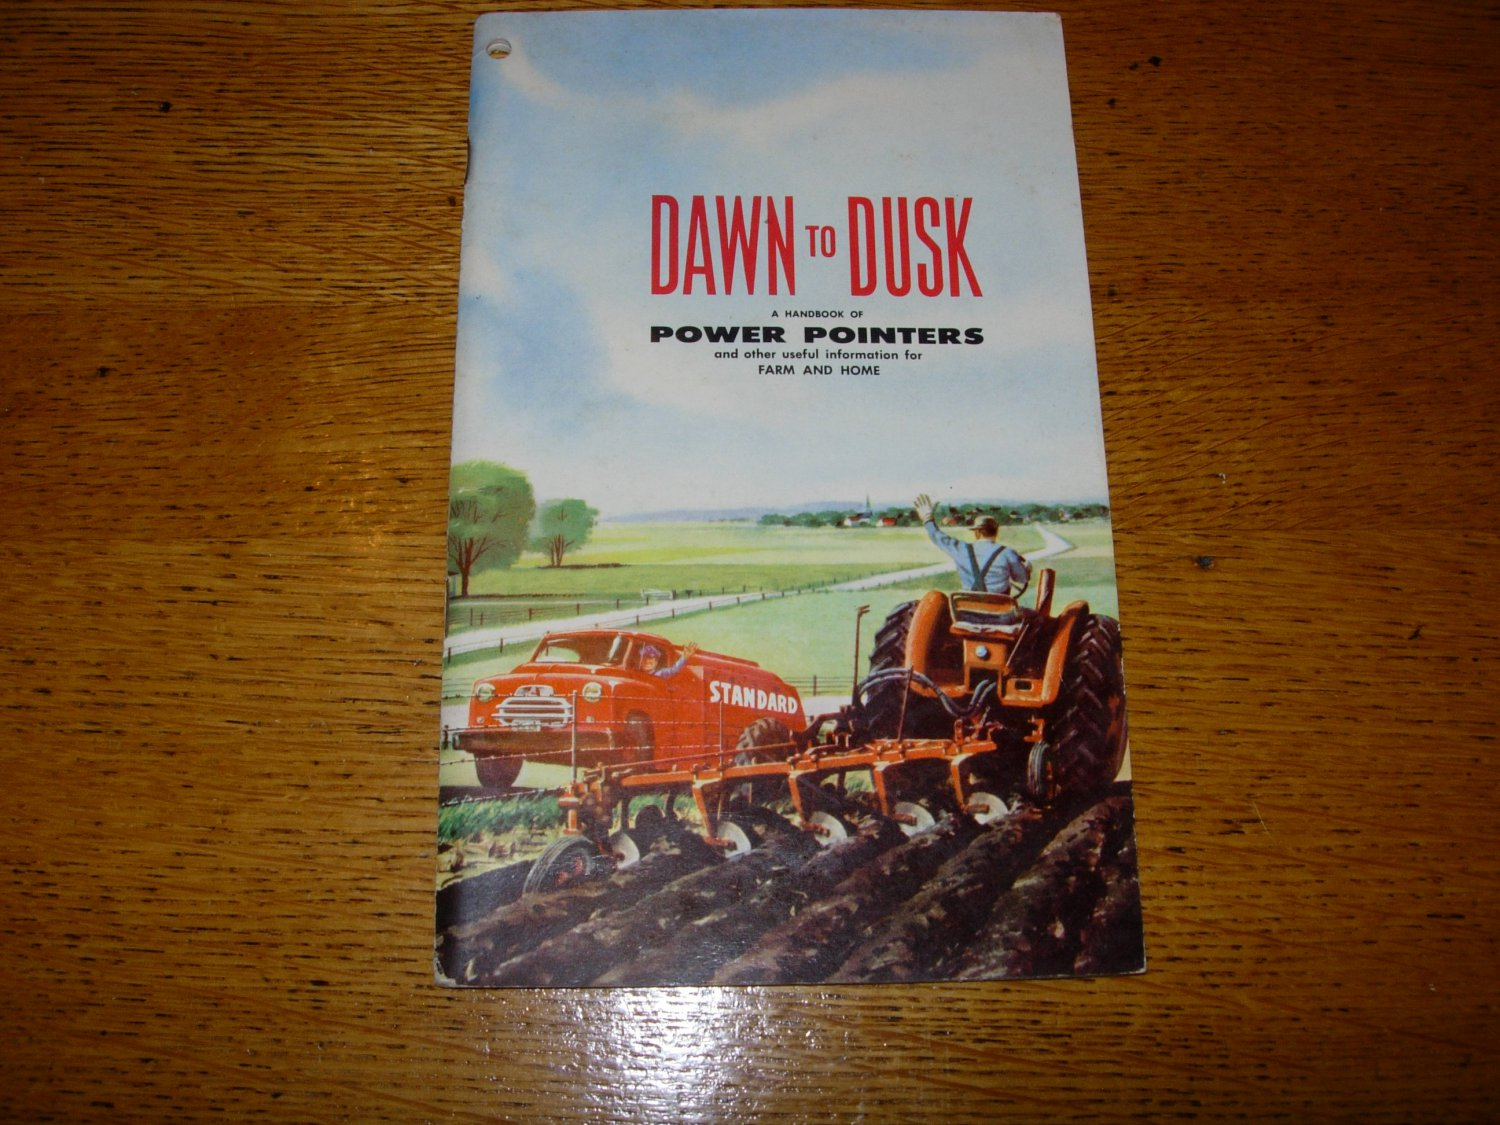 1955 Dawn to Dusk Farming Handbook from Standard Oil Co